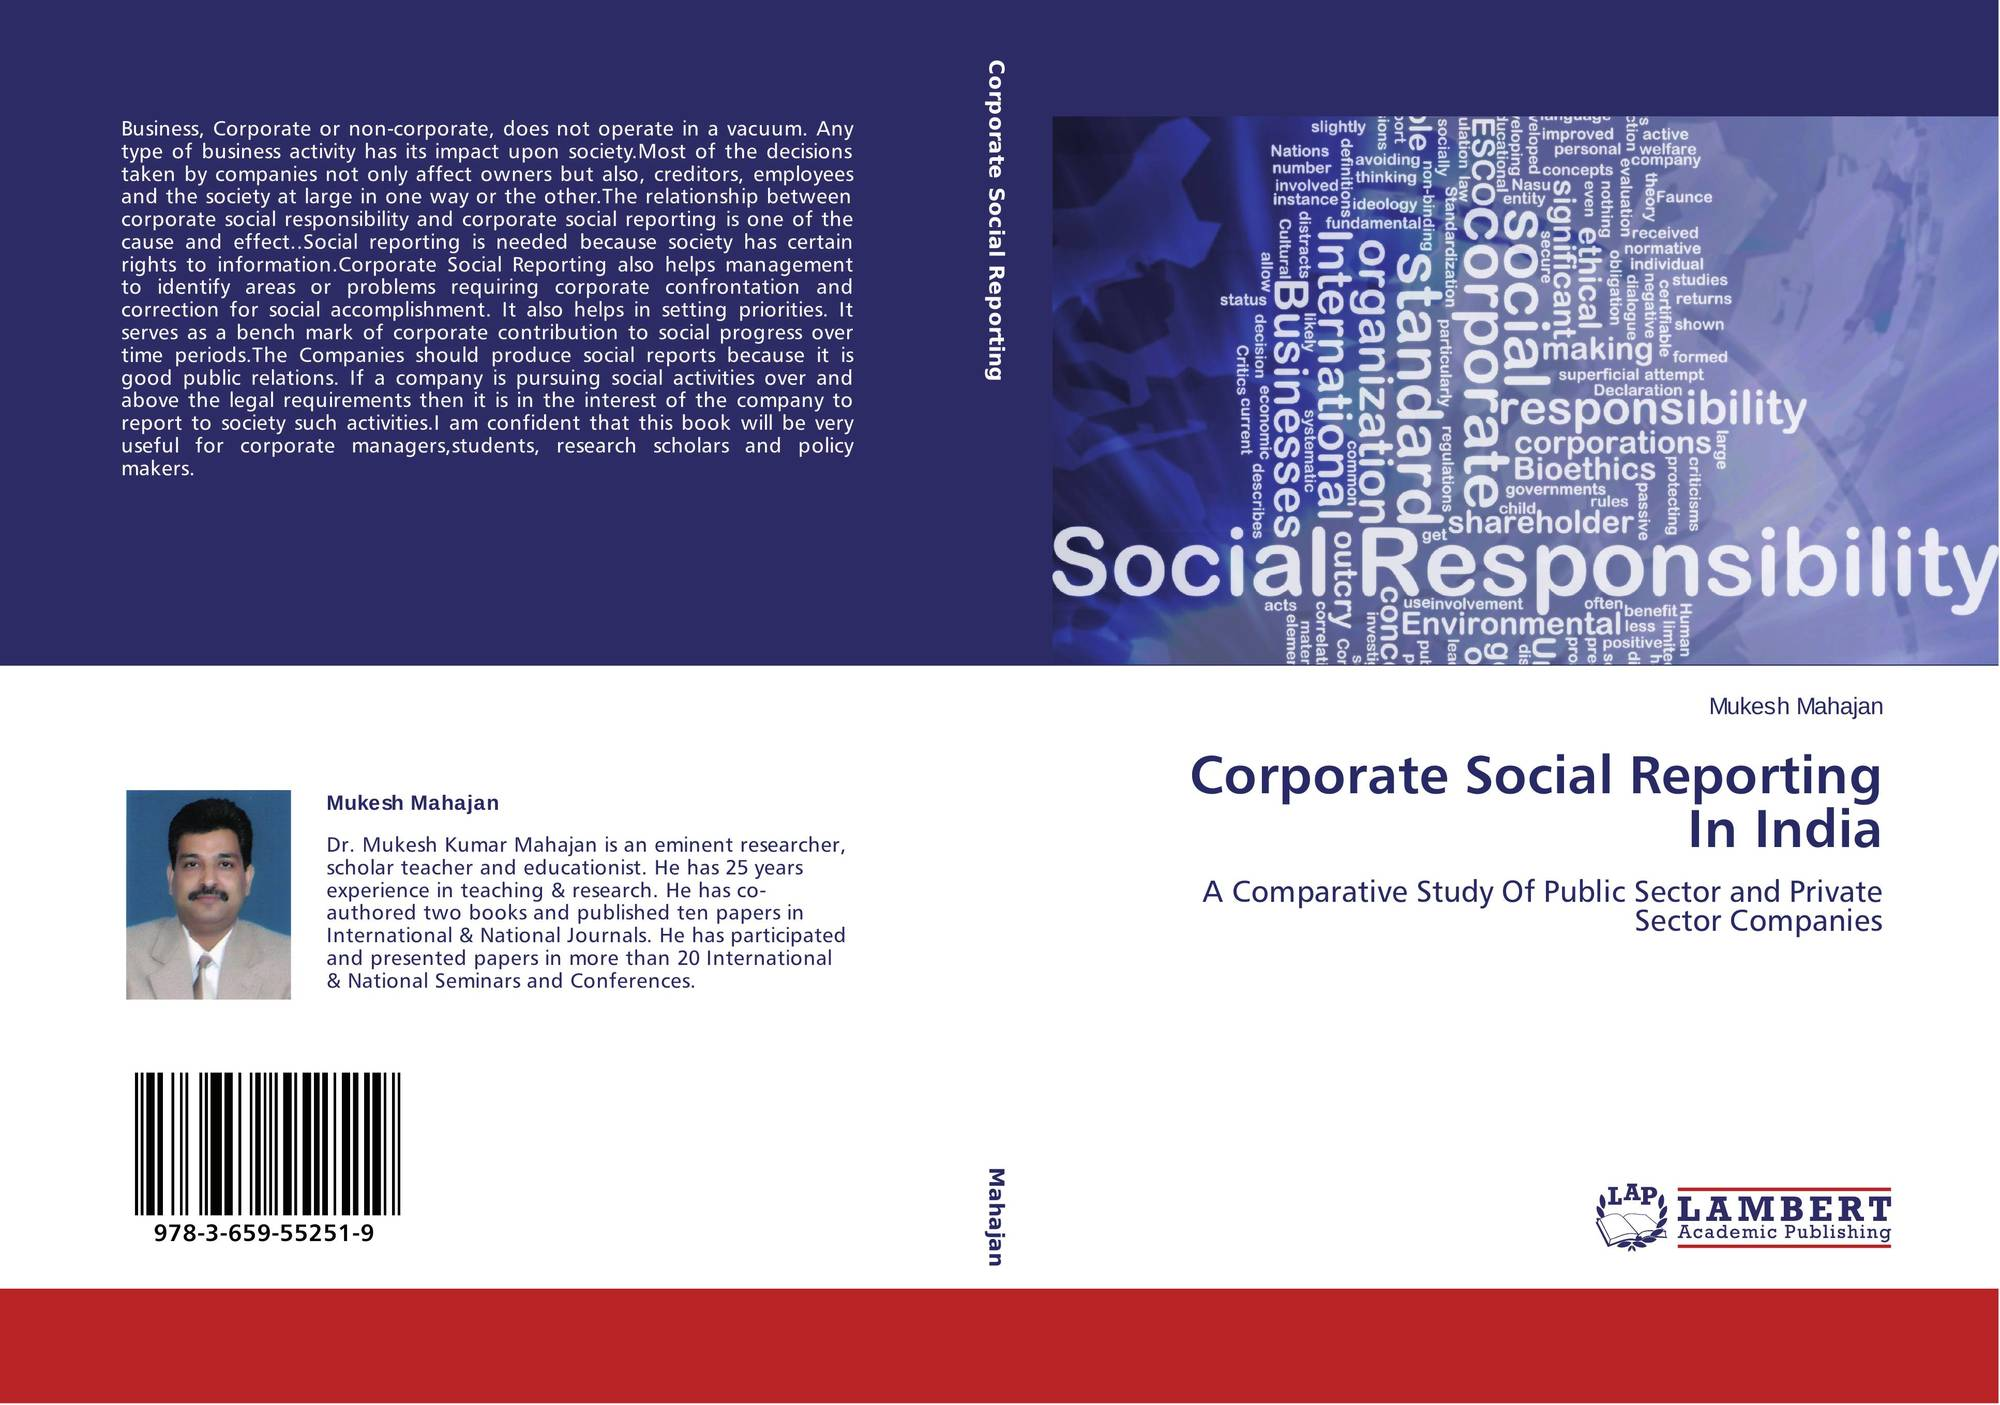 case study on corporate social responsibility of mncs in india The business case for corporate social responsibility:a review of concepts, research and practice ijmr_275 85106 archie b carroll and kareem m shabana1 director, nonprofit management & community service program & robert w scherer professor emeritus.